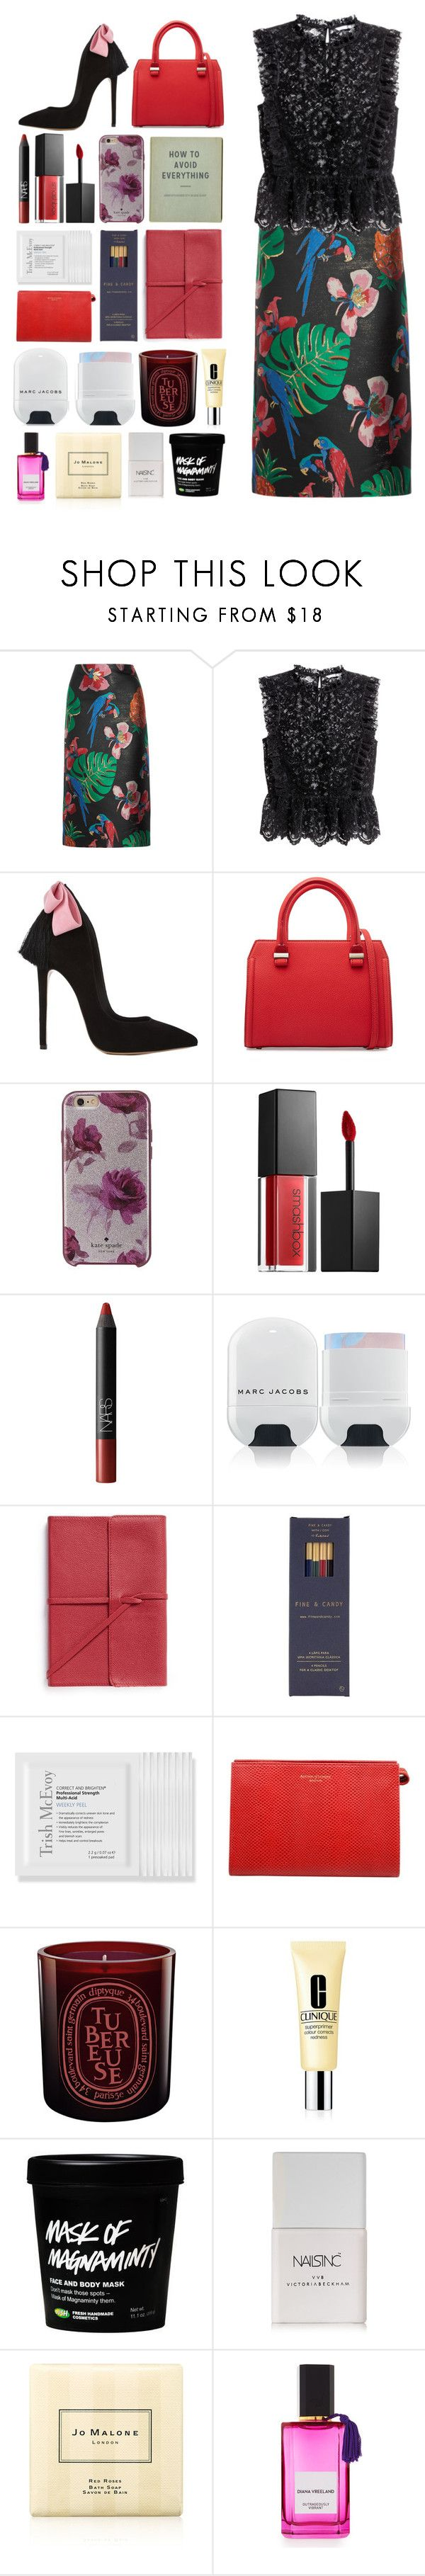 """5492"" by katrina-yeow ❤ liked on Polyvore featuring Valentino, H&M, Victoria Beckham, Kate Spade, Smashbox, NARS Cosmetics, Marc Jacobs, Bynd Artisan, Fine & Candy and Trish McEvoy"